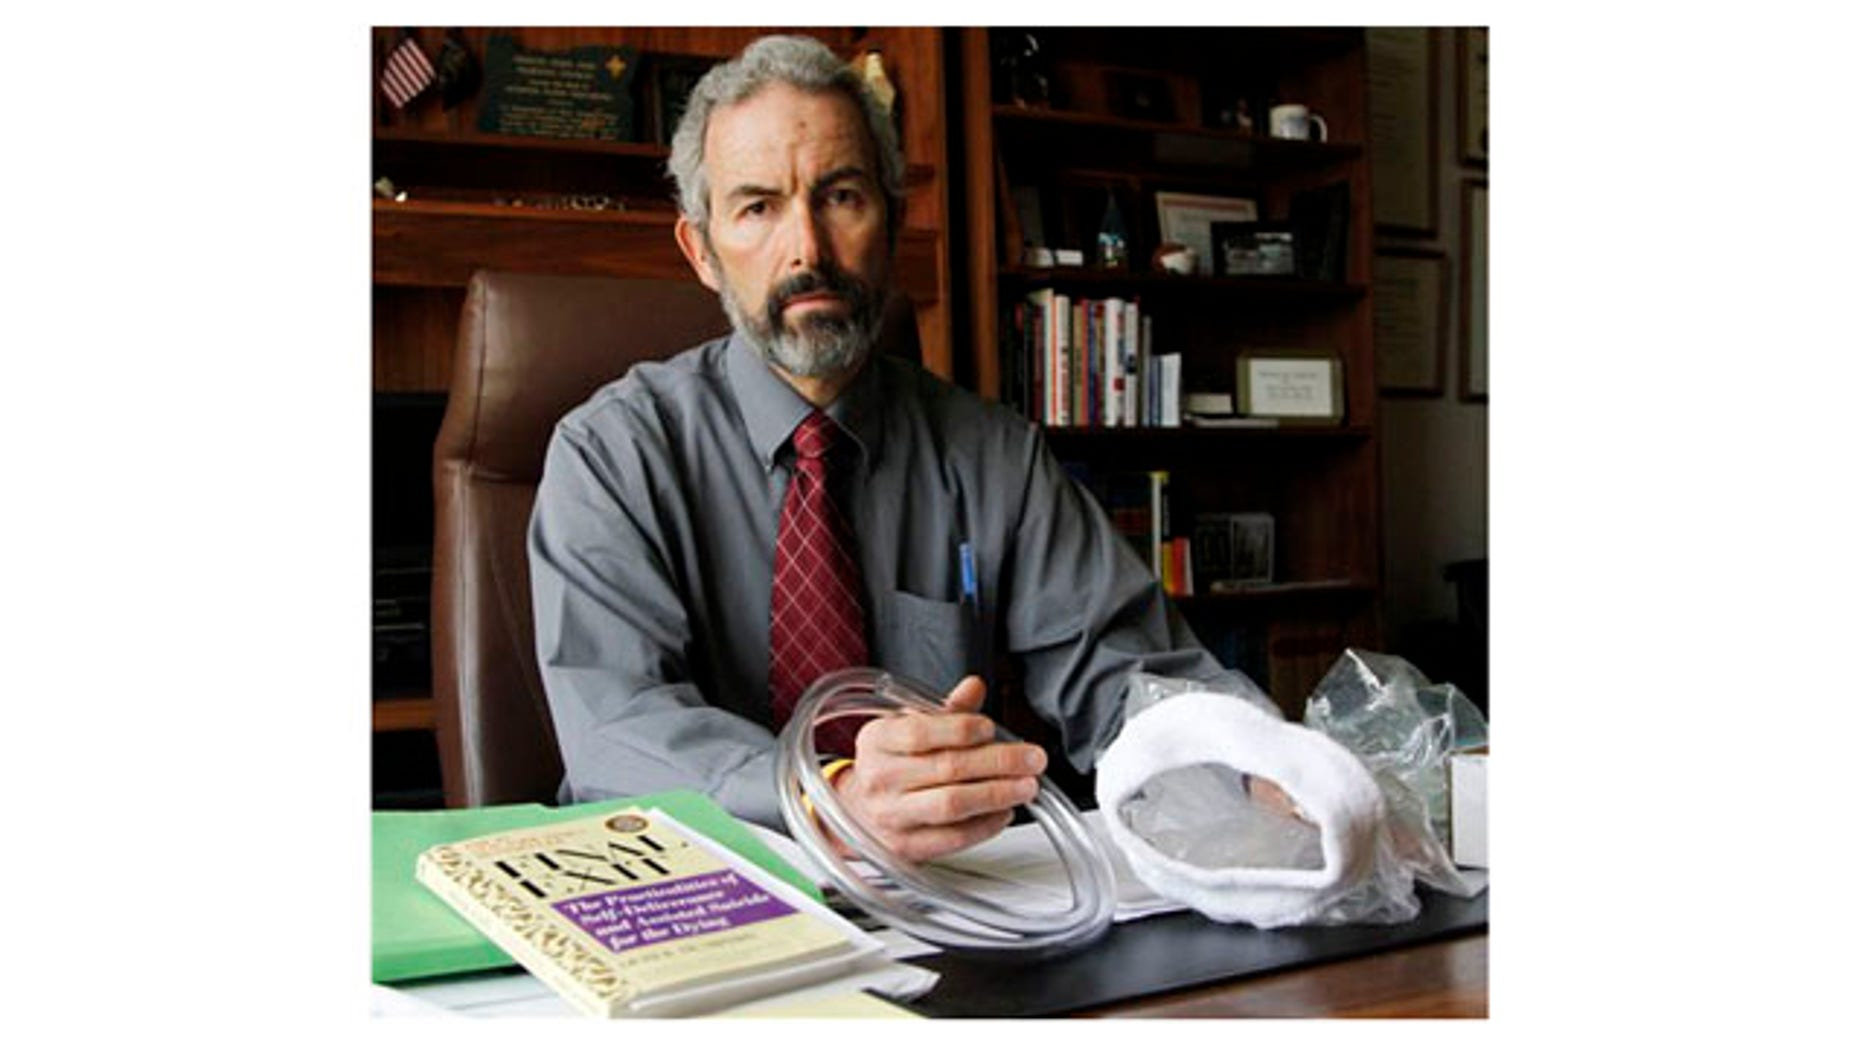 """May 12: Oregon State Sen. Floyd Prozanski shows a suicide kit consisting of the book """"Final Exit"""", plastic tubing and a plastic bag with collar that fits over a person's head at his Capitol office in Salem, Ore."""